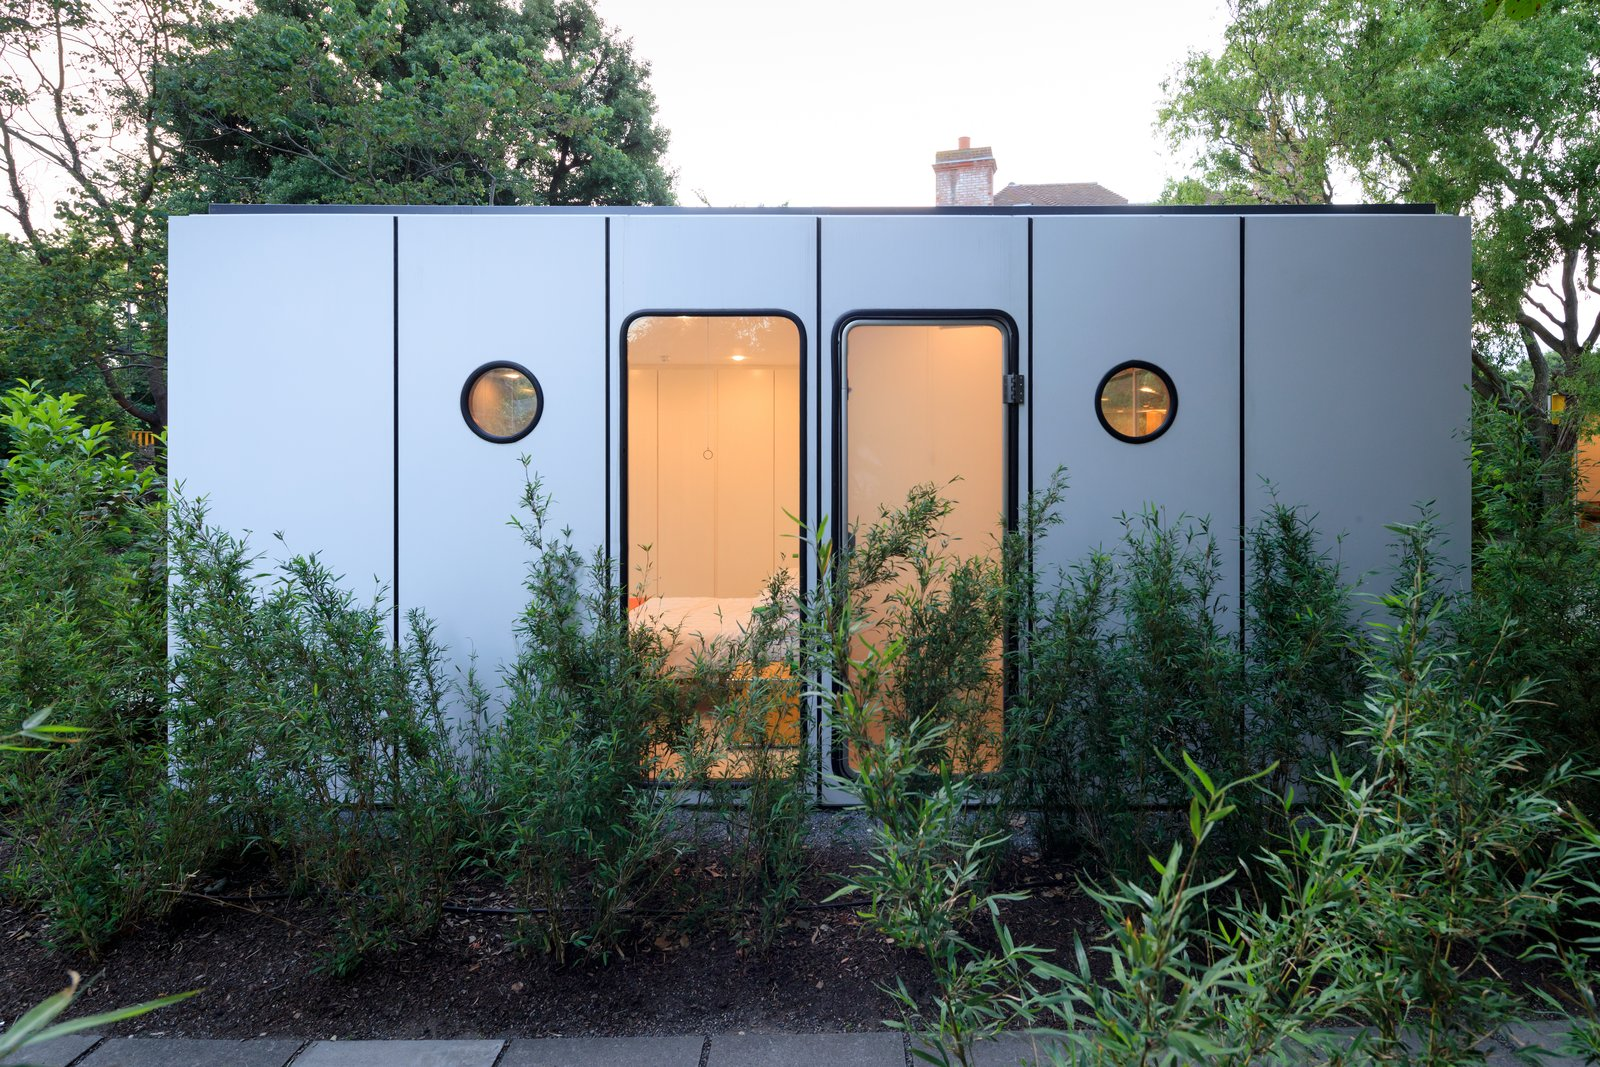 Photo 11 of 14 in Fully Renovated, Wimbledon House by Richard Rogers Hosts New Architecture Fellows in London